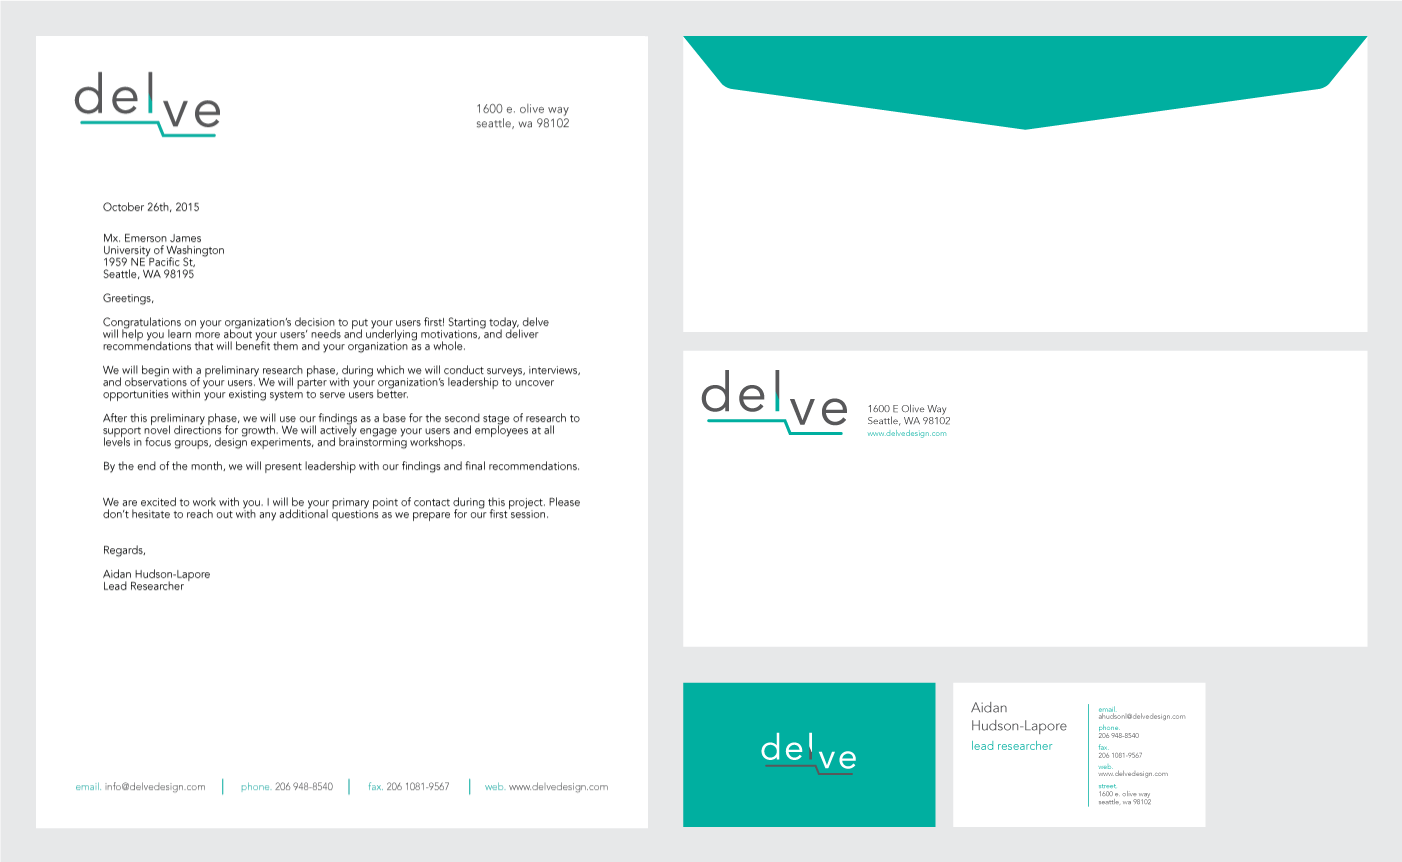 delve-stationary_R